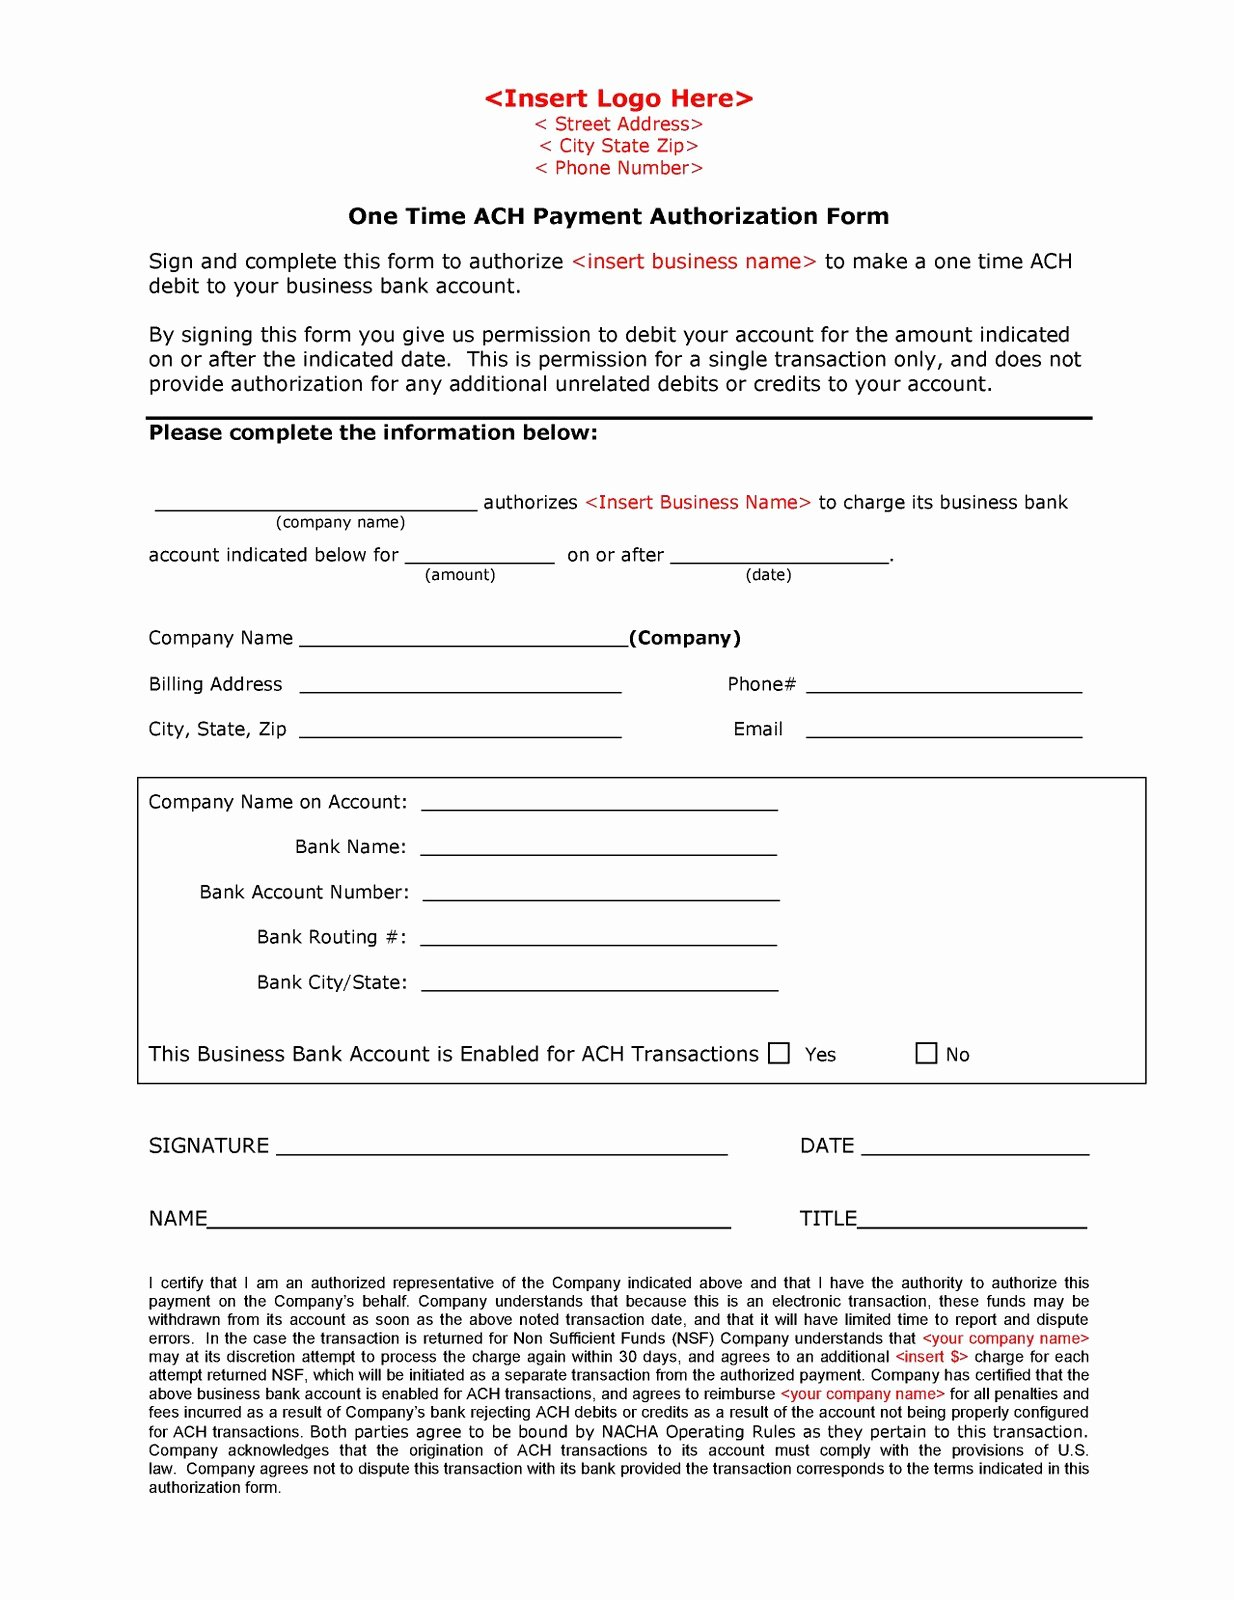 Ach Deposit Authorization form Template Awesome Automated Clearing House Ach May 2011